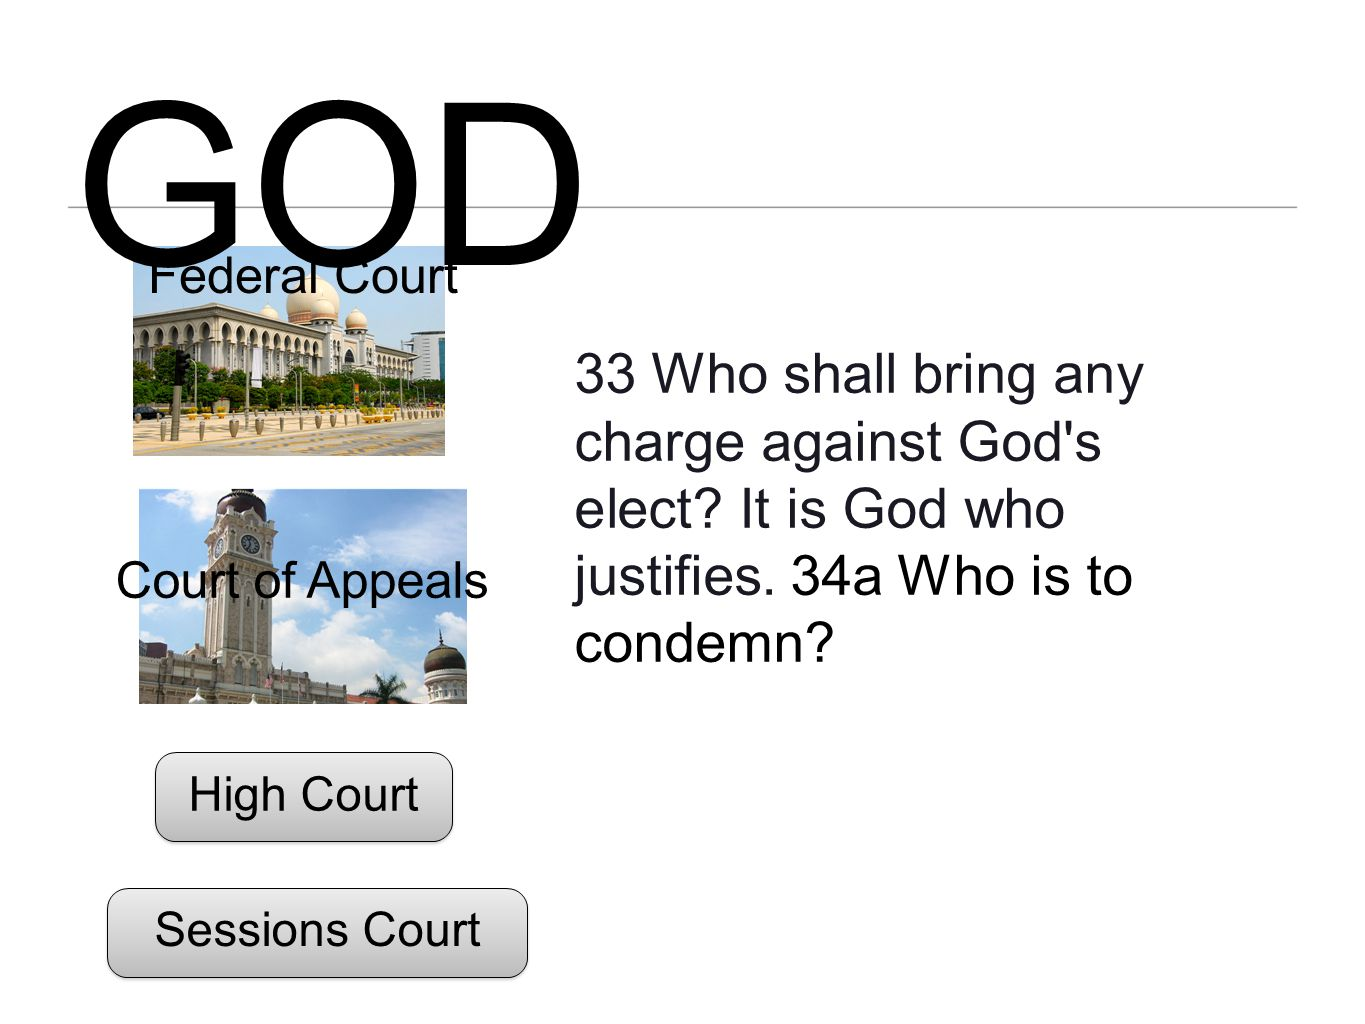 GOD 33 Who shall bring any charge against God s elect It is God who justifies. 34a Who is to condemn